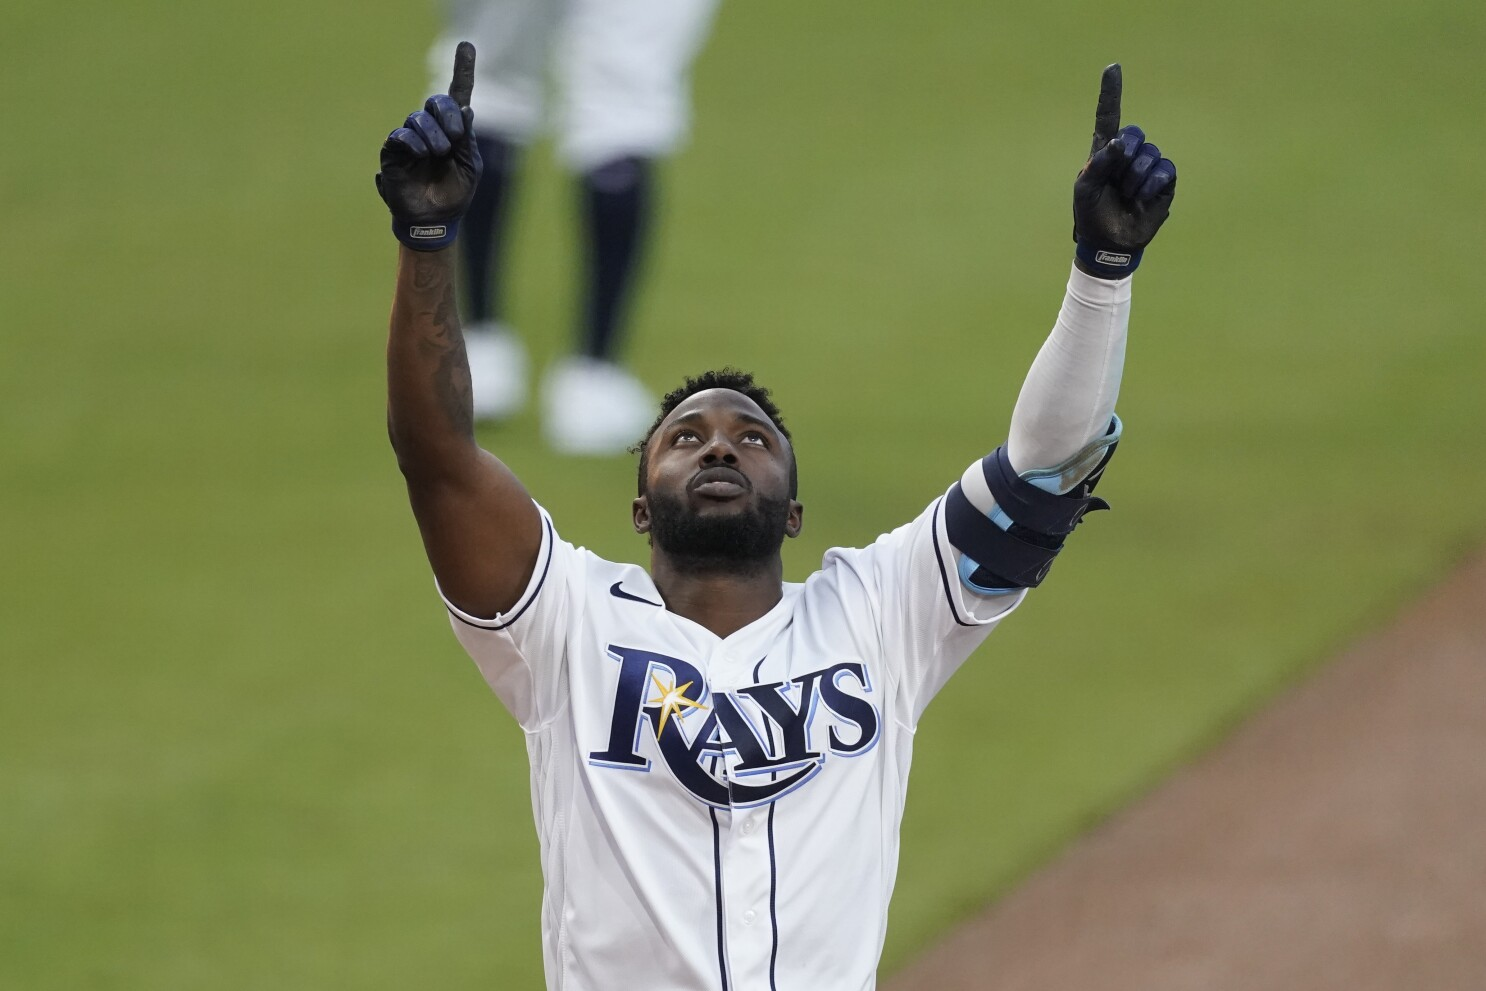 alcs rays defeat astros in game 7 advance to world series los angeles times alcs rays defeat astros in game 7